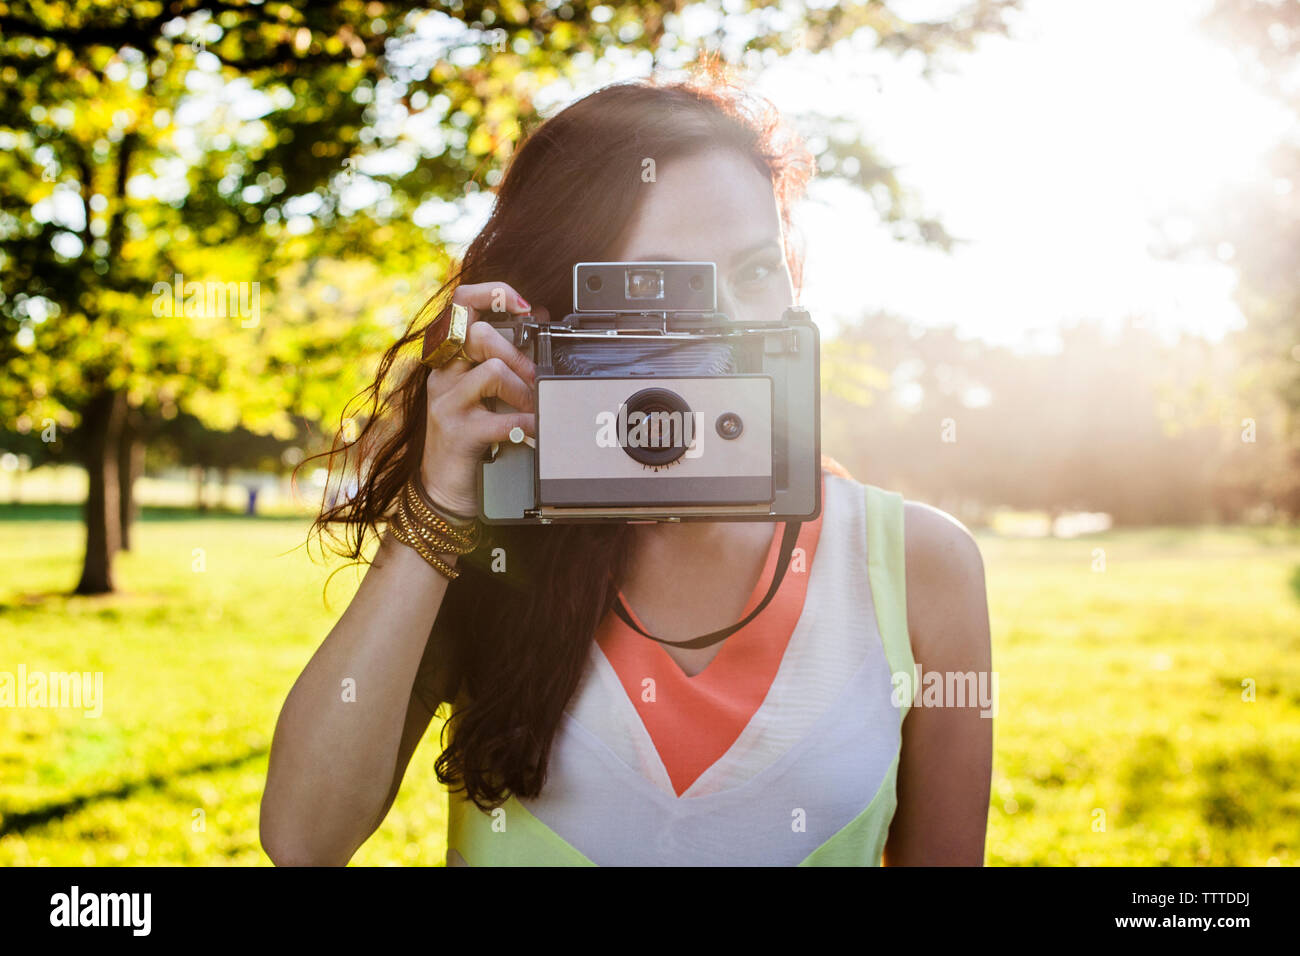 Young woman photographing with vintage camera - Stock Image